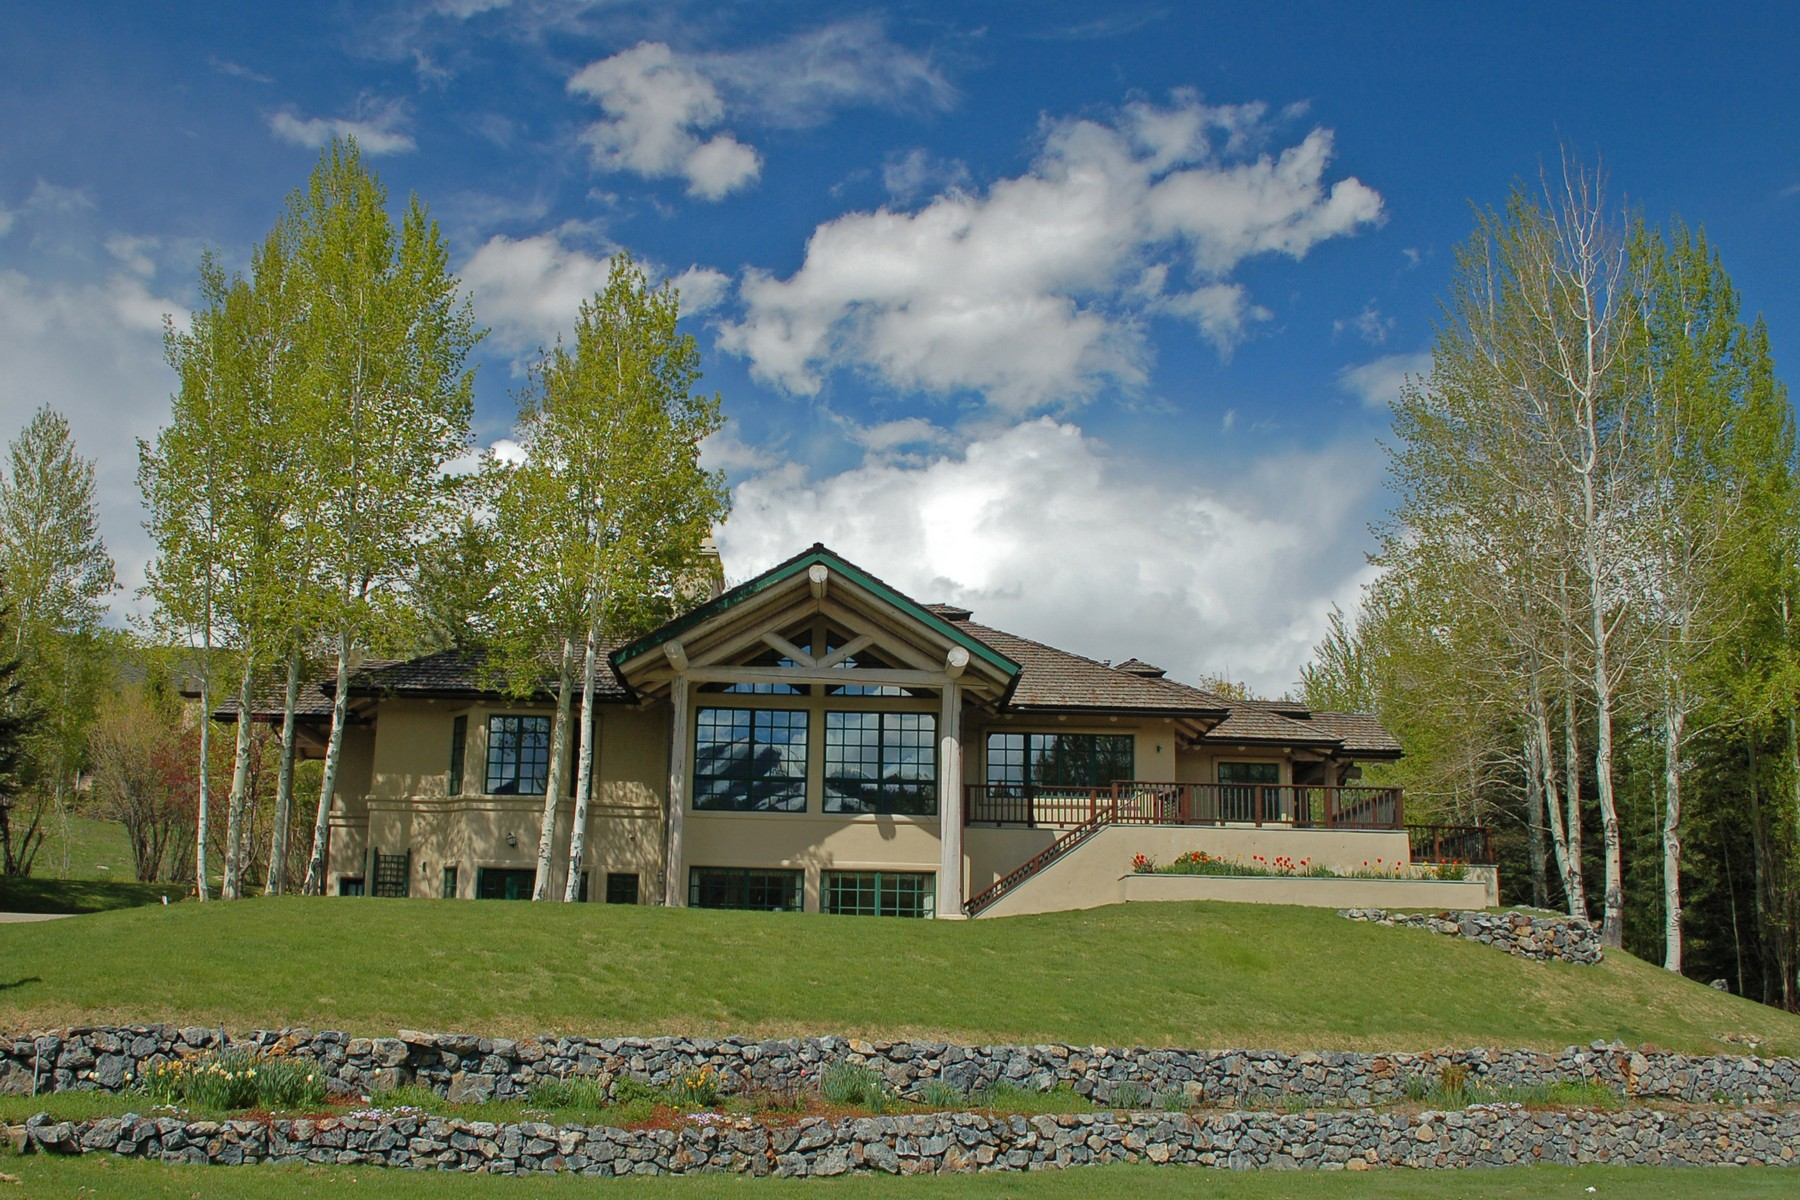 Maison unifamiliale pour l Vente à Bigwood Views 335 N. Bigwood Dr Ketchum, Idaho, 83340 États-Unis